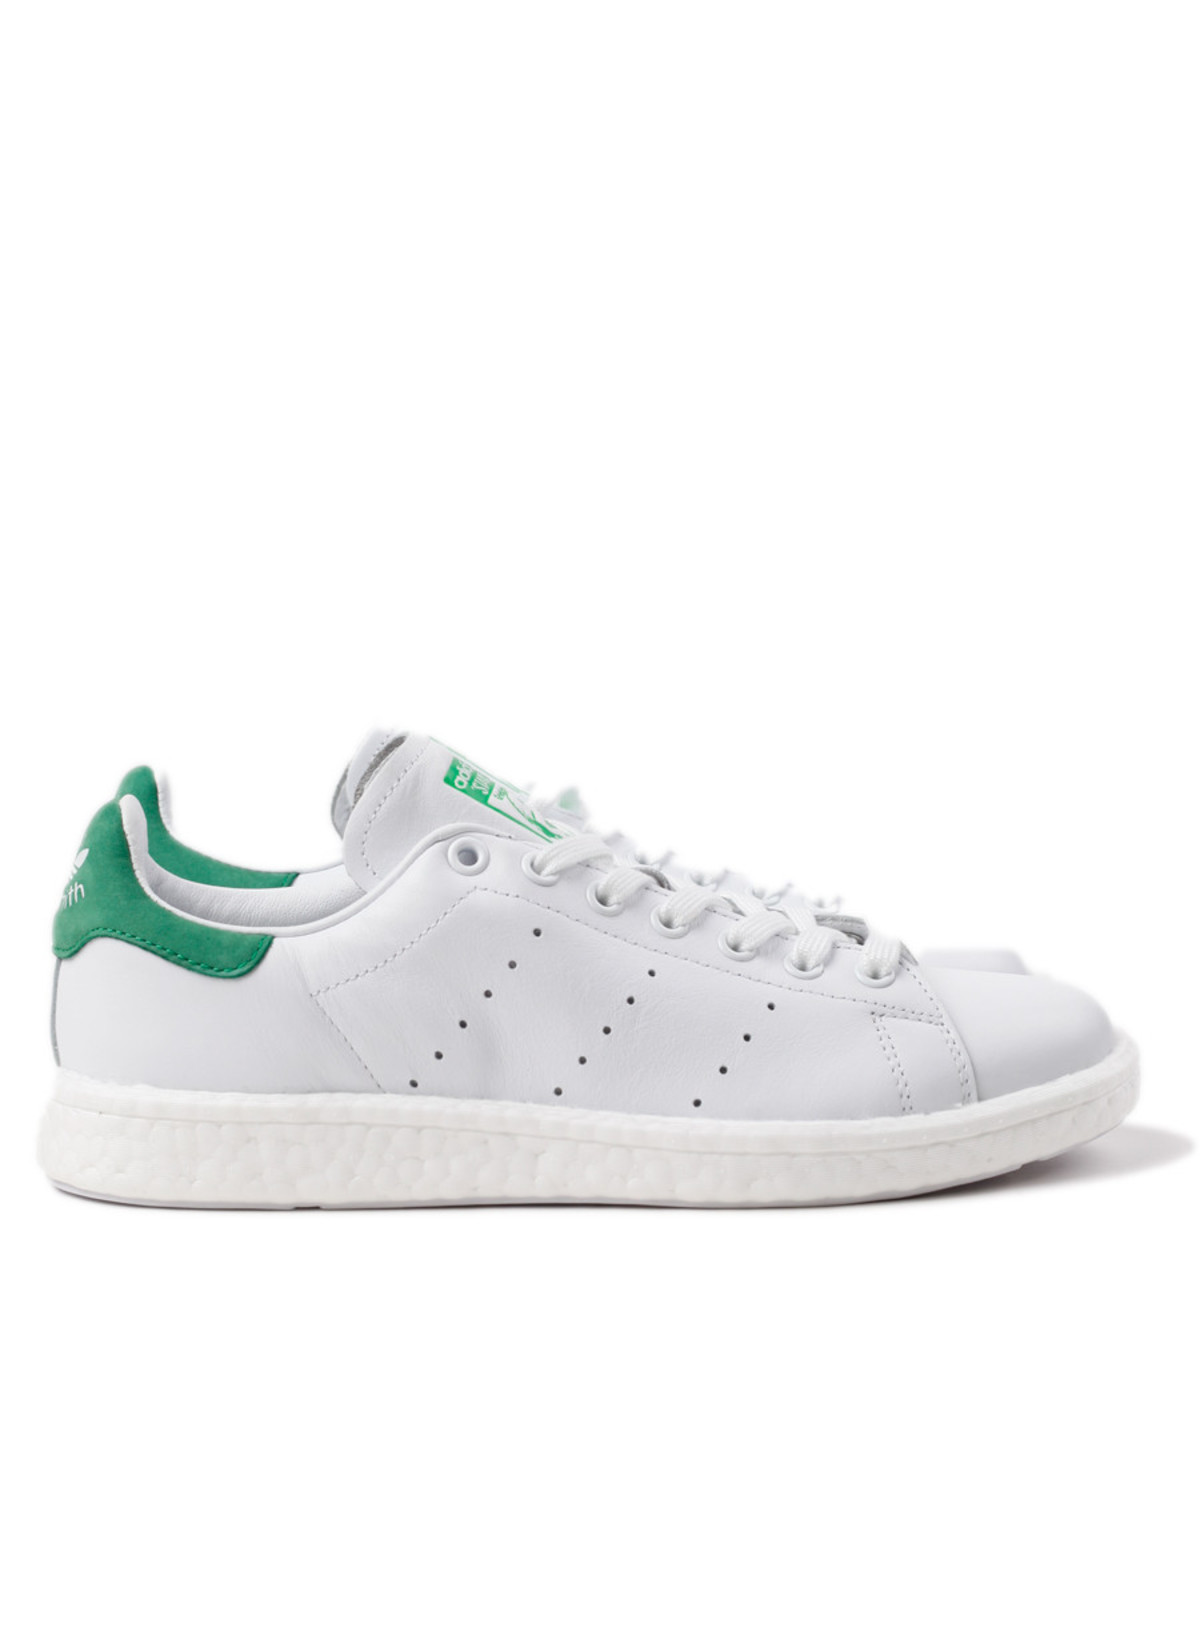 super popular 85808 91108 Adidas Stan Smith Boost White/Green BB0008